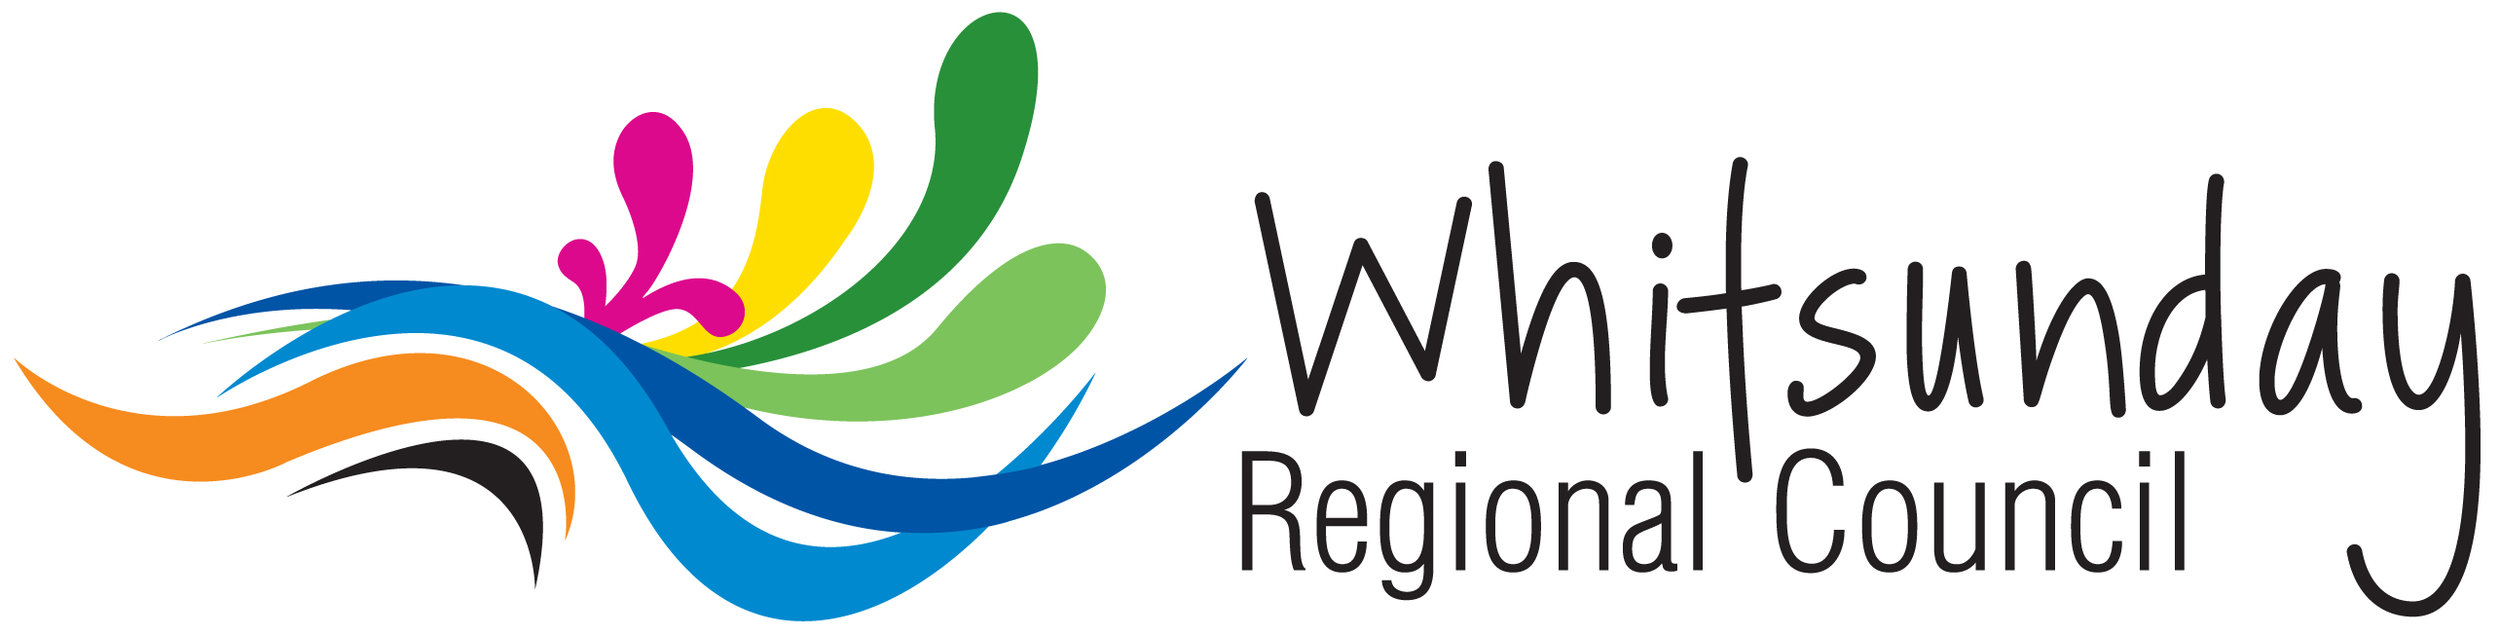 Whitsunday Regional Council.jpg